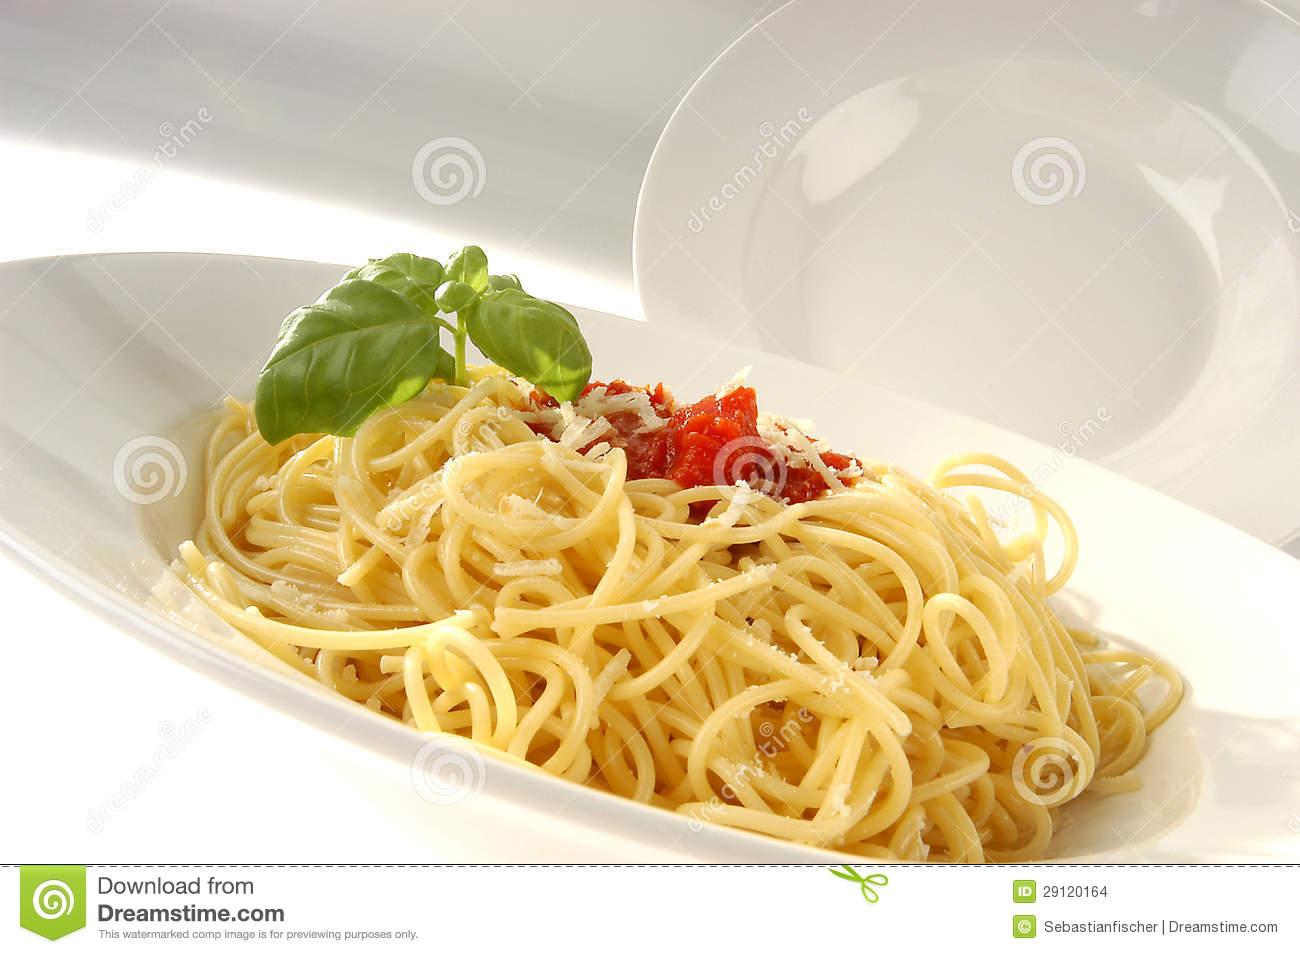 White Pasta dishes - spaghetti with tomato sauce and basil.